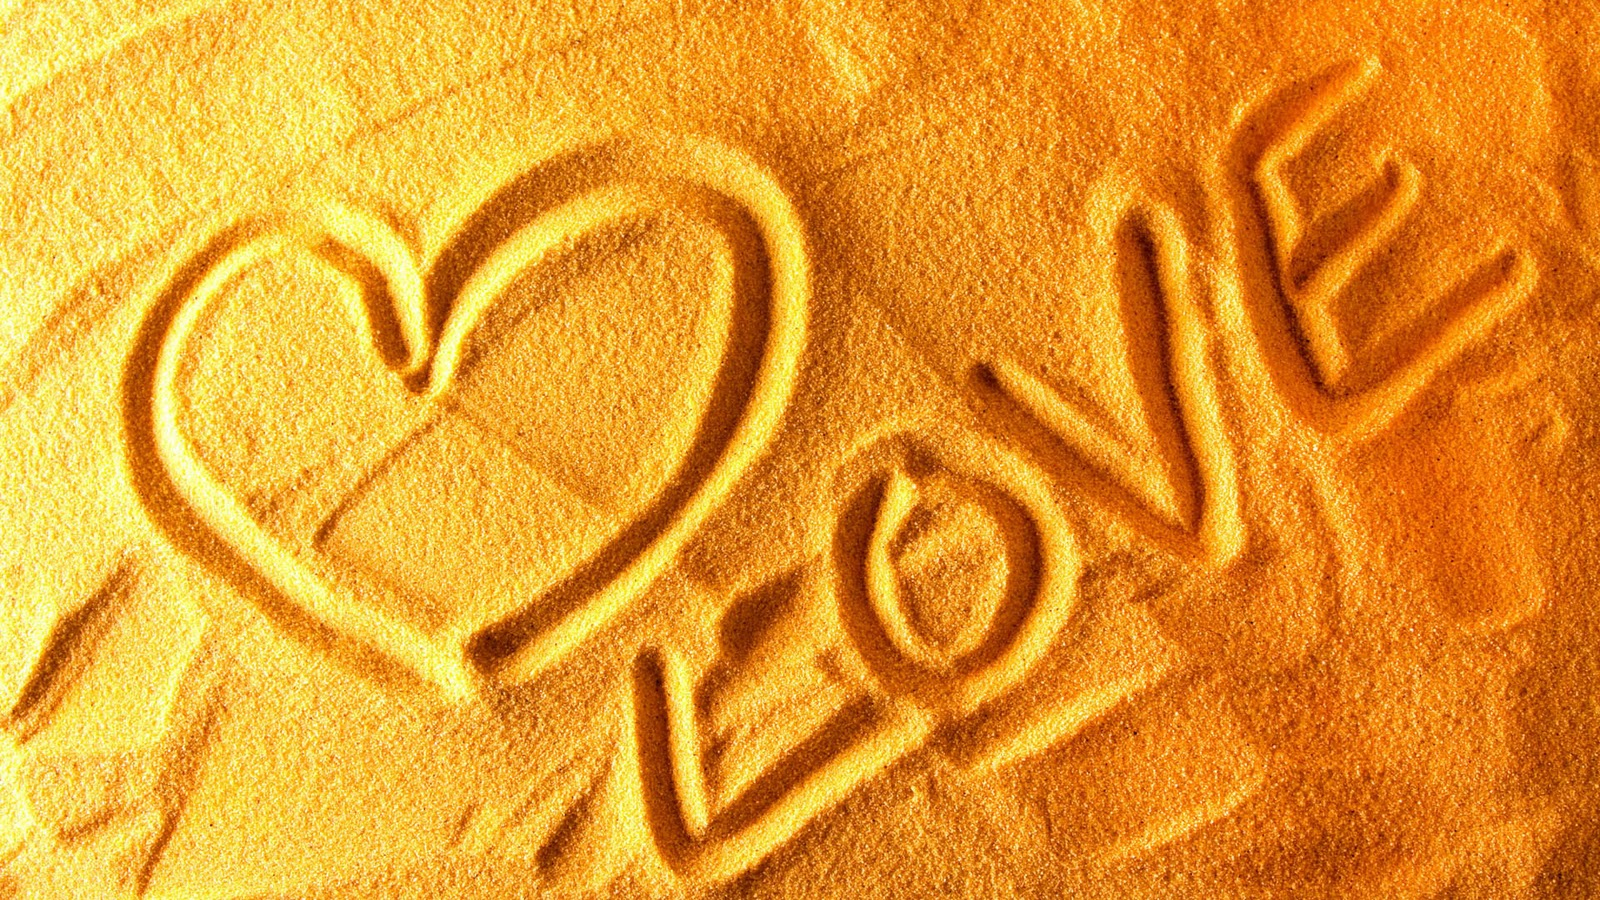 HD Wallpapers: LOVE HD WALLPAPERS